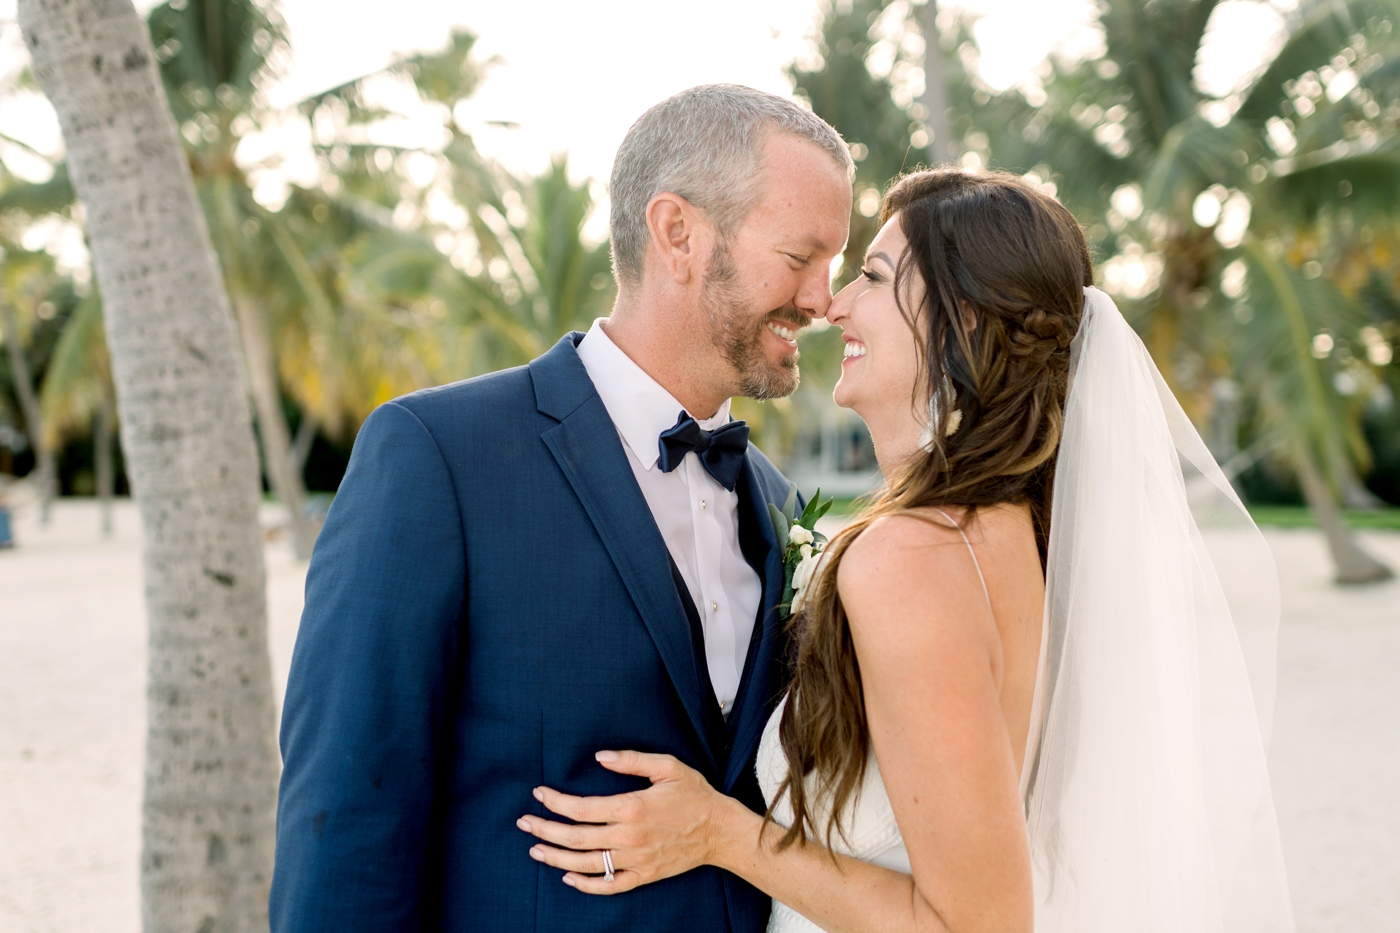 Islamorada, Wedding, Tropical, Love, Couples, Florida Keys